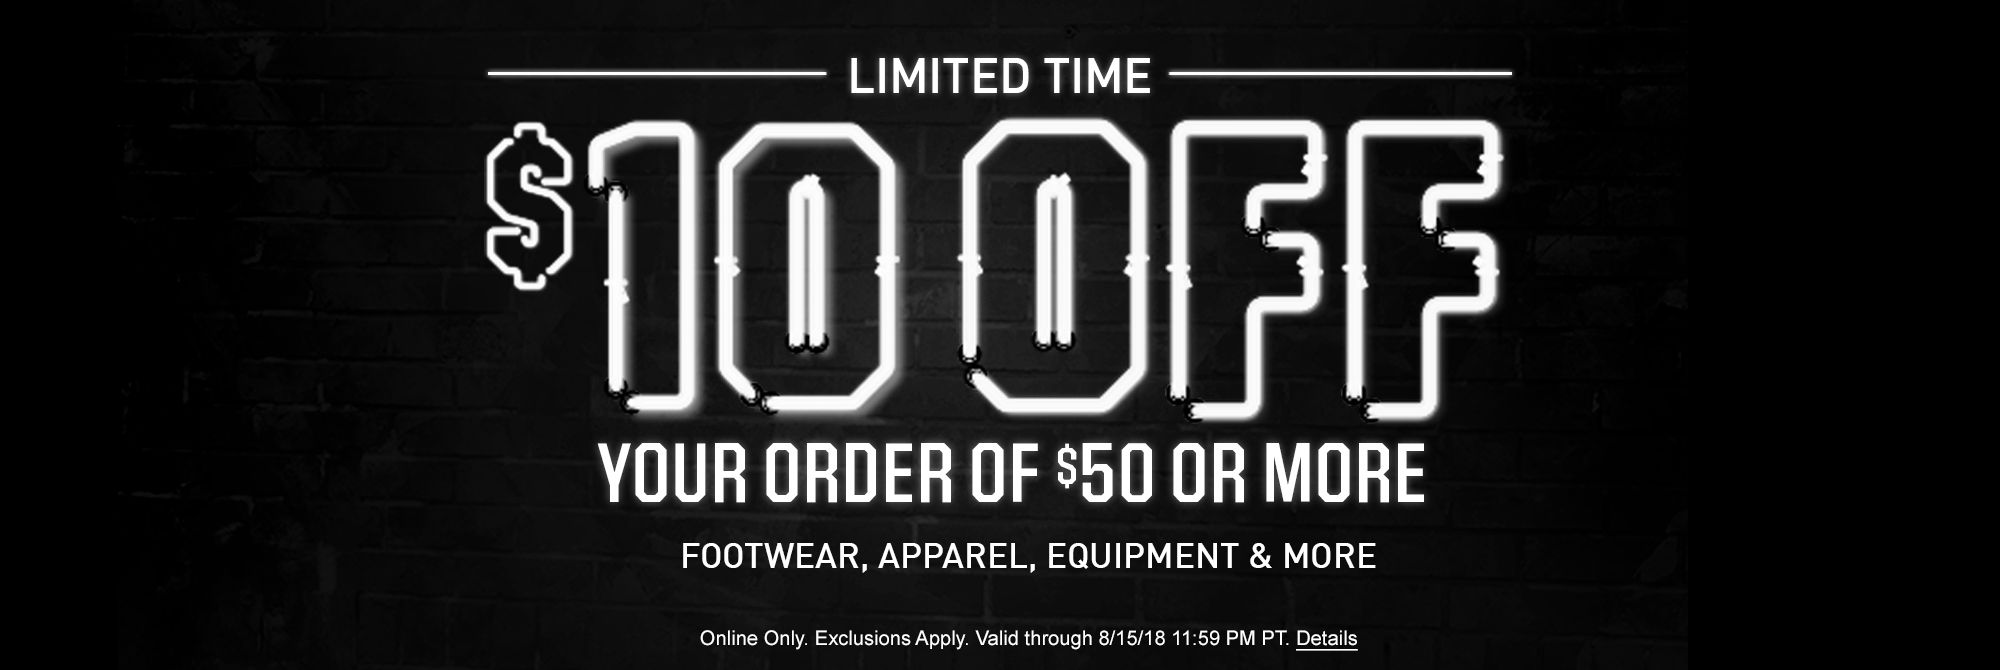 Limited Time - $20 Off $100 Or More | Online Only. Exclusions Apply. Valid through 7/17/18 11:59 PM PT | Click for Details